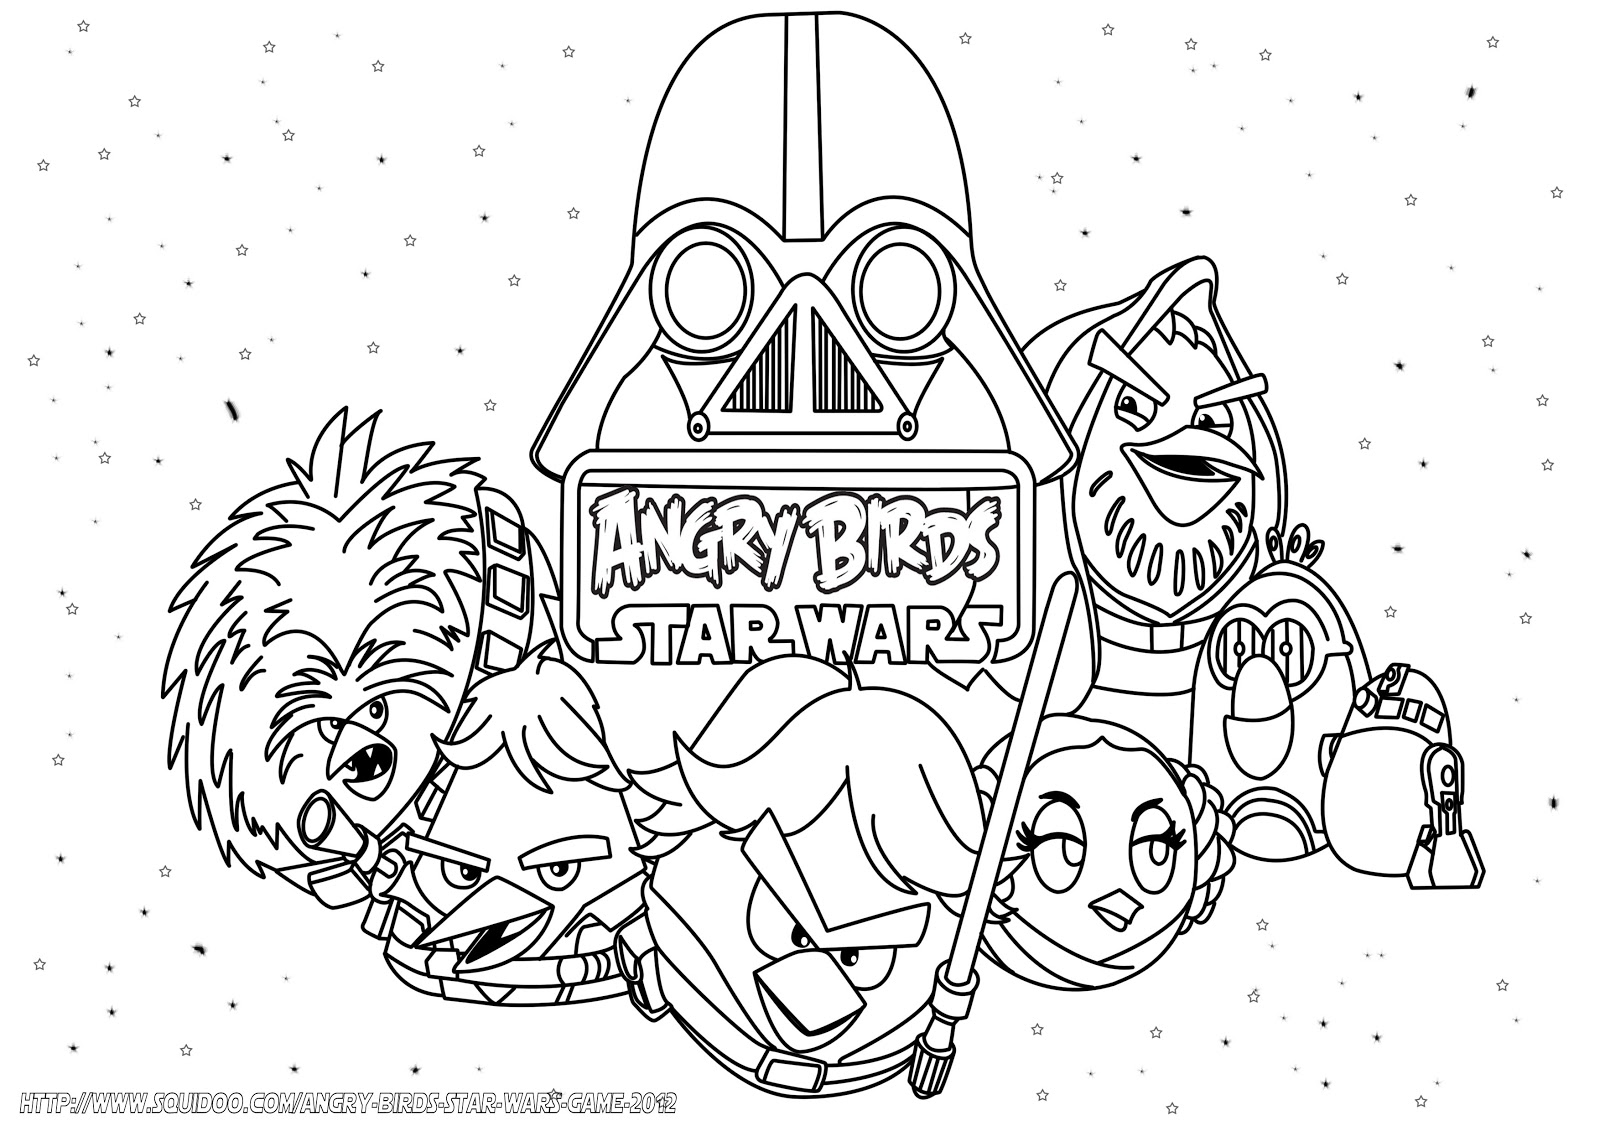 Angry birds starwars free colouring pages for Star wars christmas coloring pages